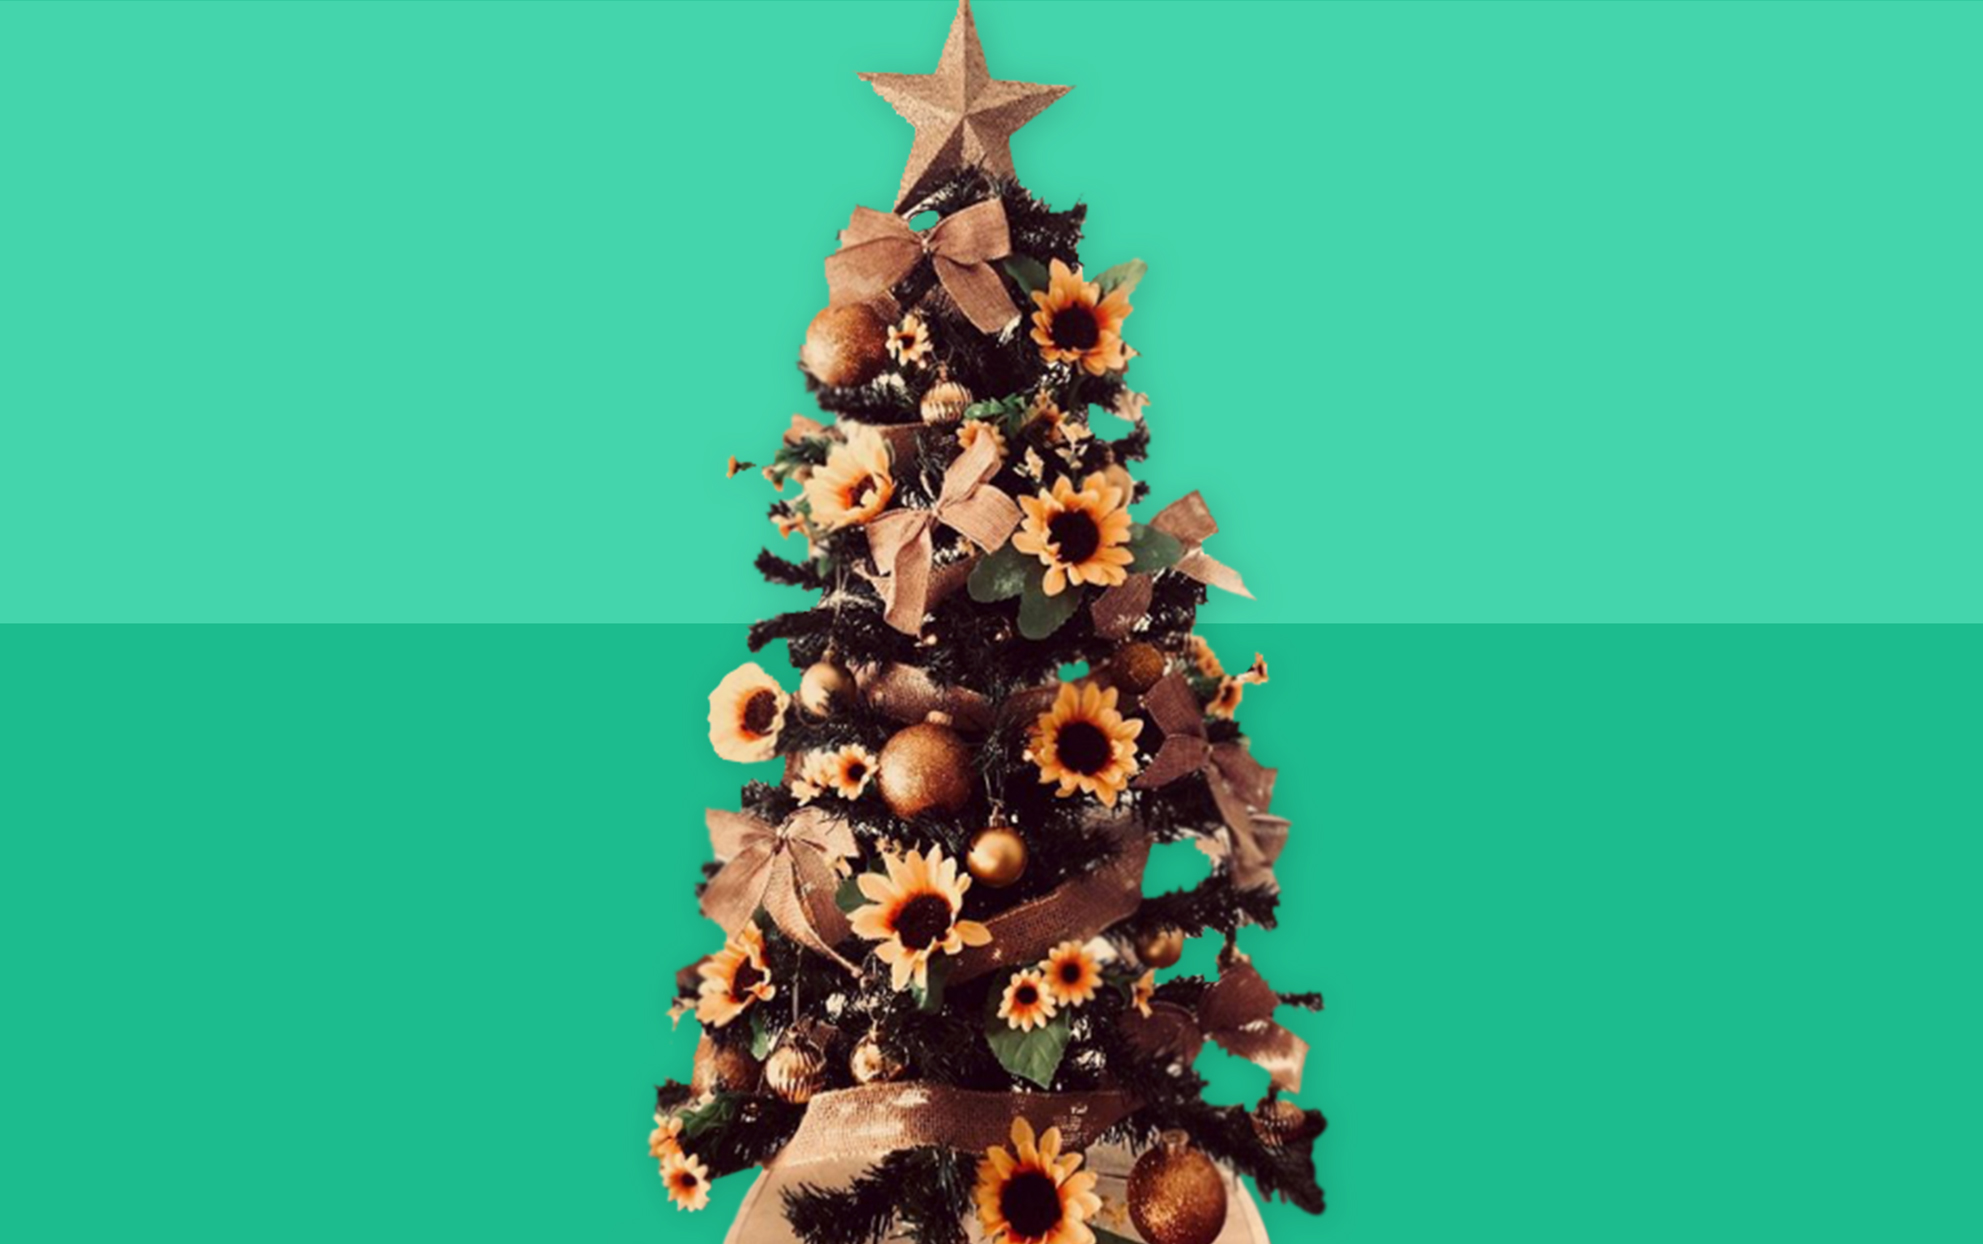 mini tree decorated with sunflowers, burlap ribbon and a gold star